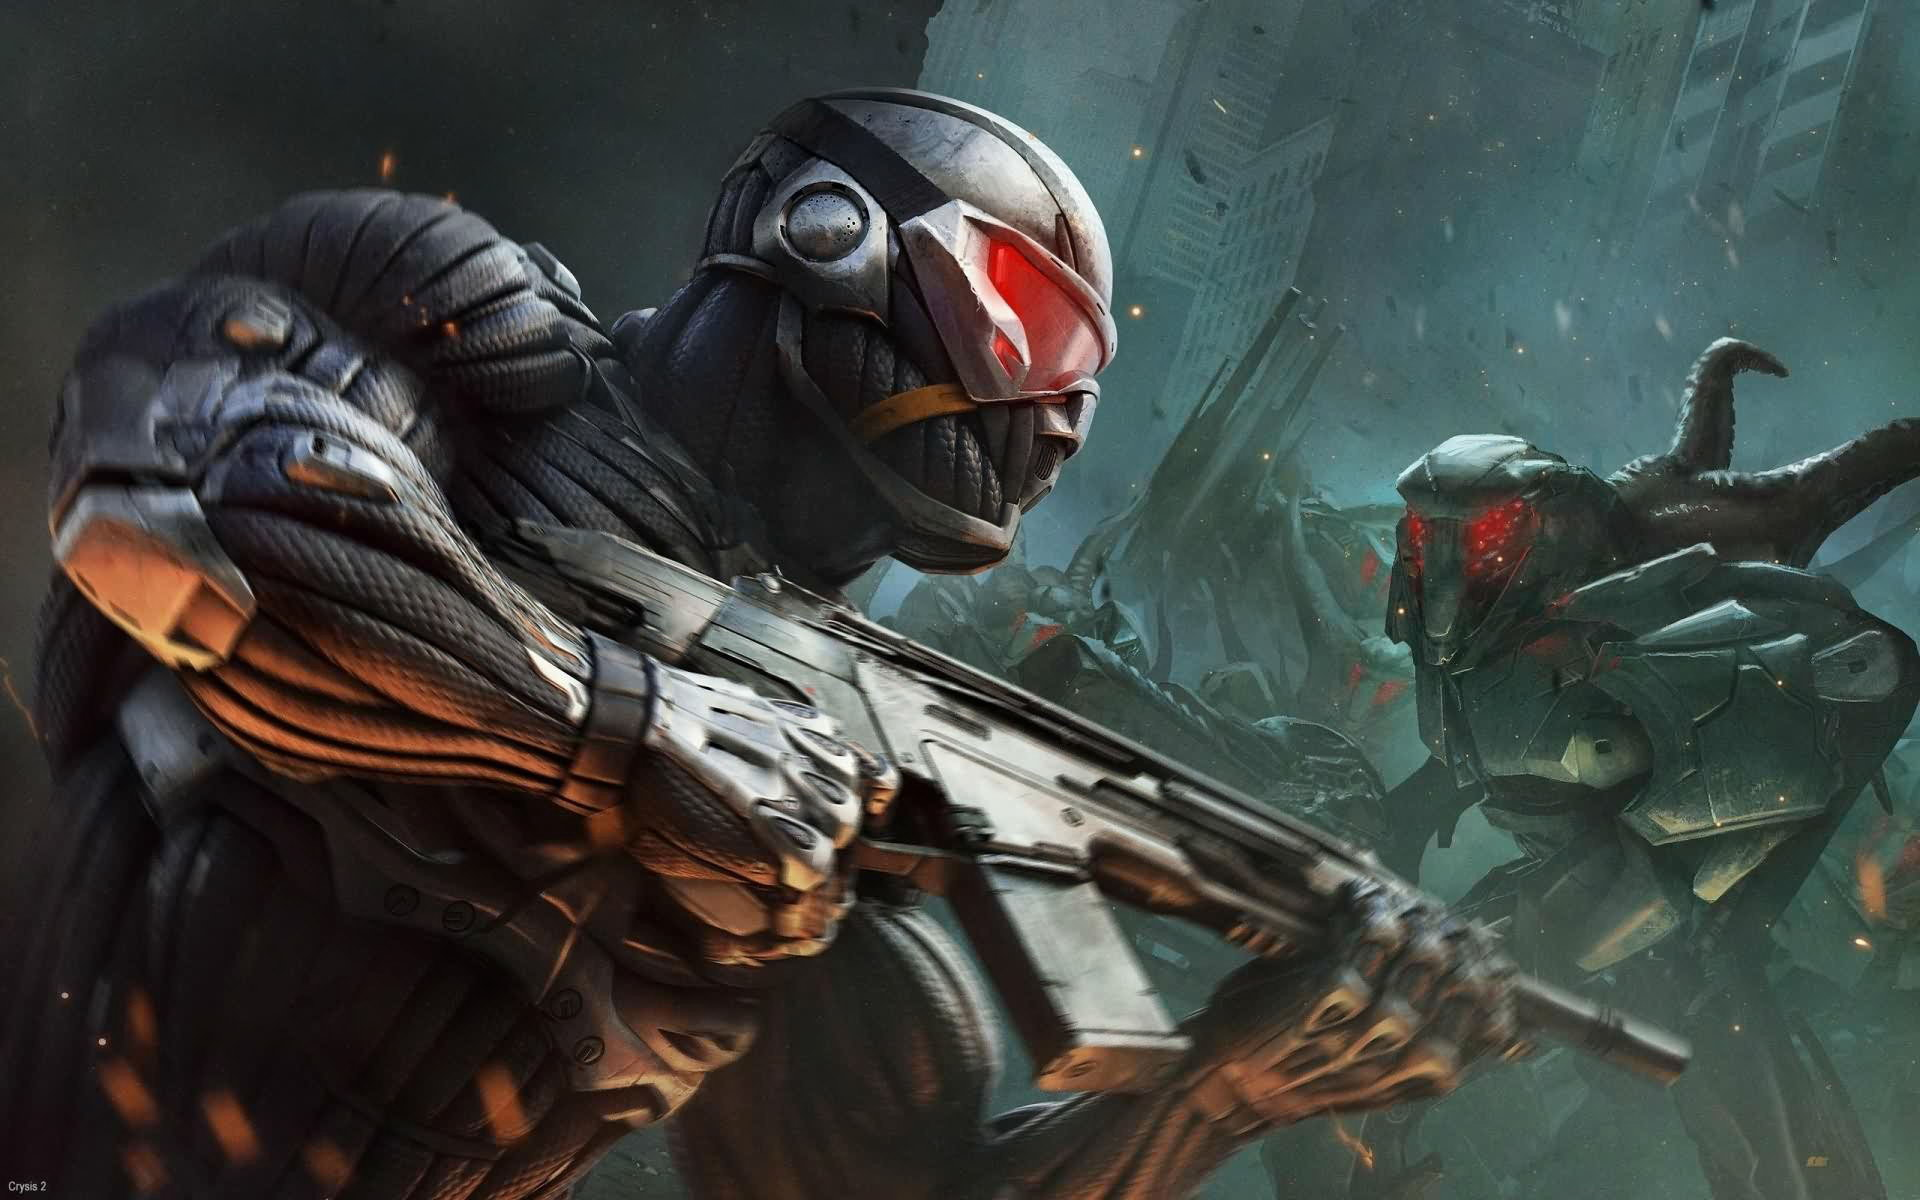 Crysis 34 Crysis 3 The Lethal Weapons Trailer